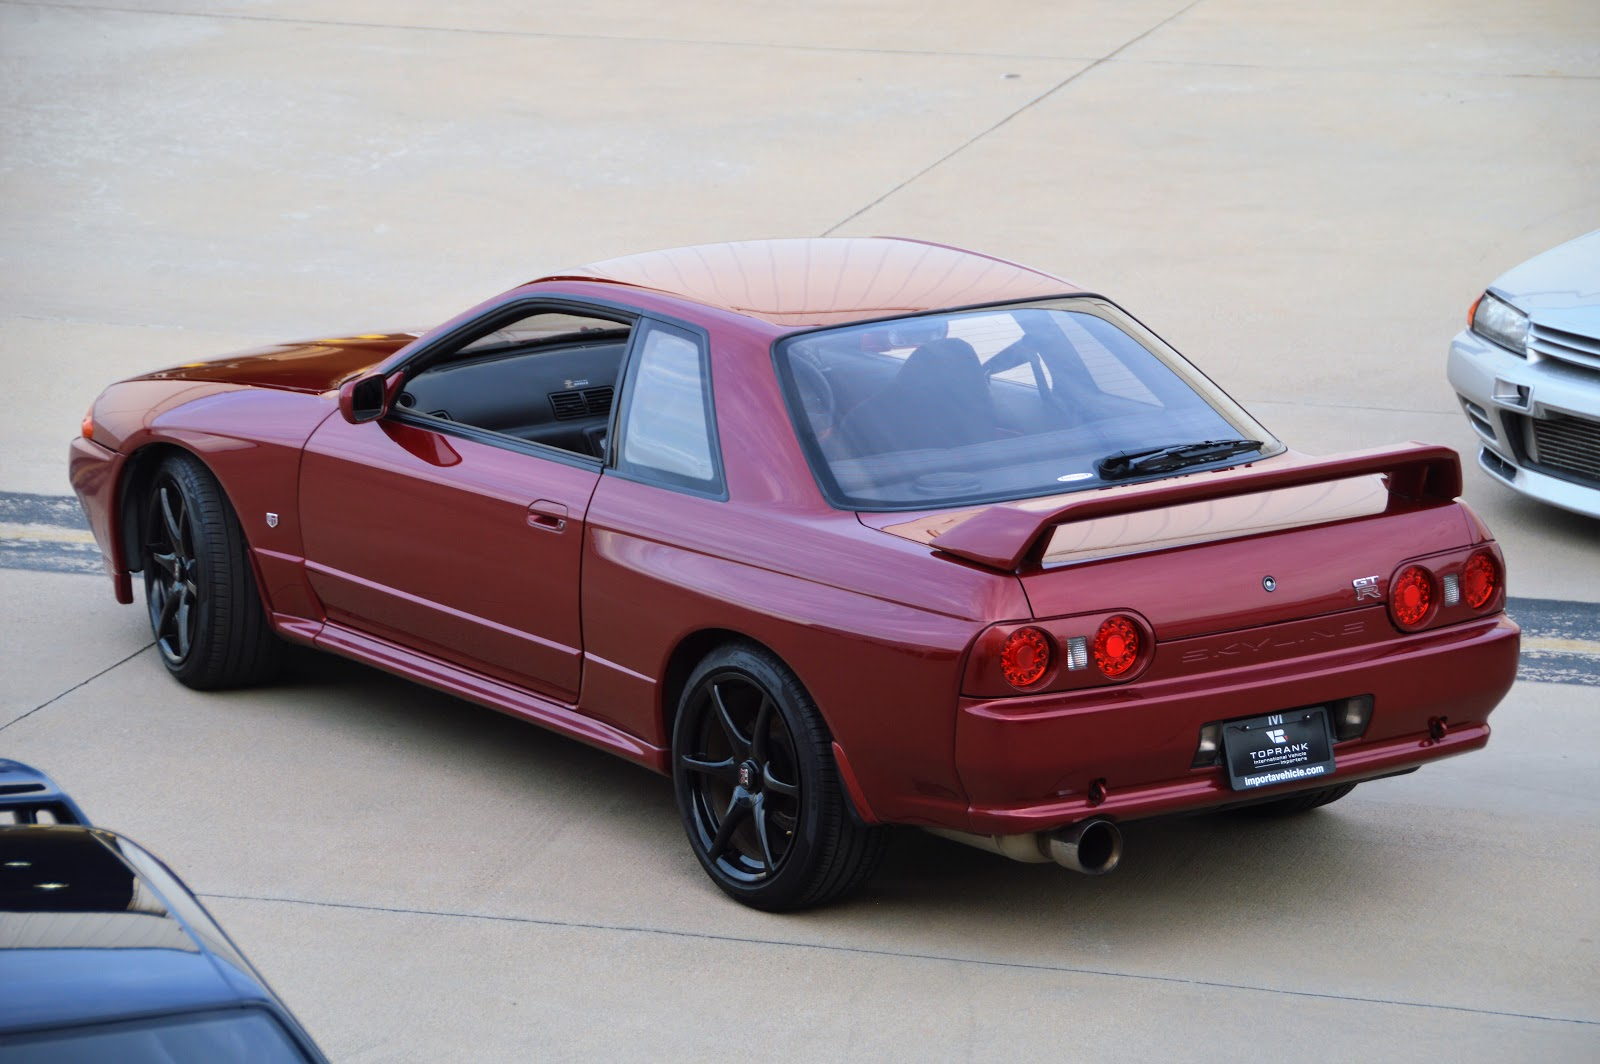 nissan skyline gt r s in the usa blog all the nissan skyline gt r r32 colors. Black Bedroom Furniture Sets. Home Design Ideas